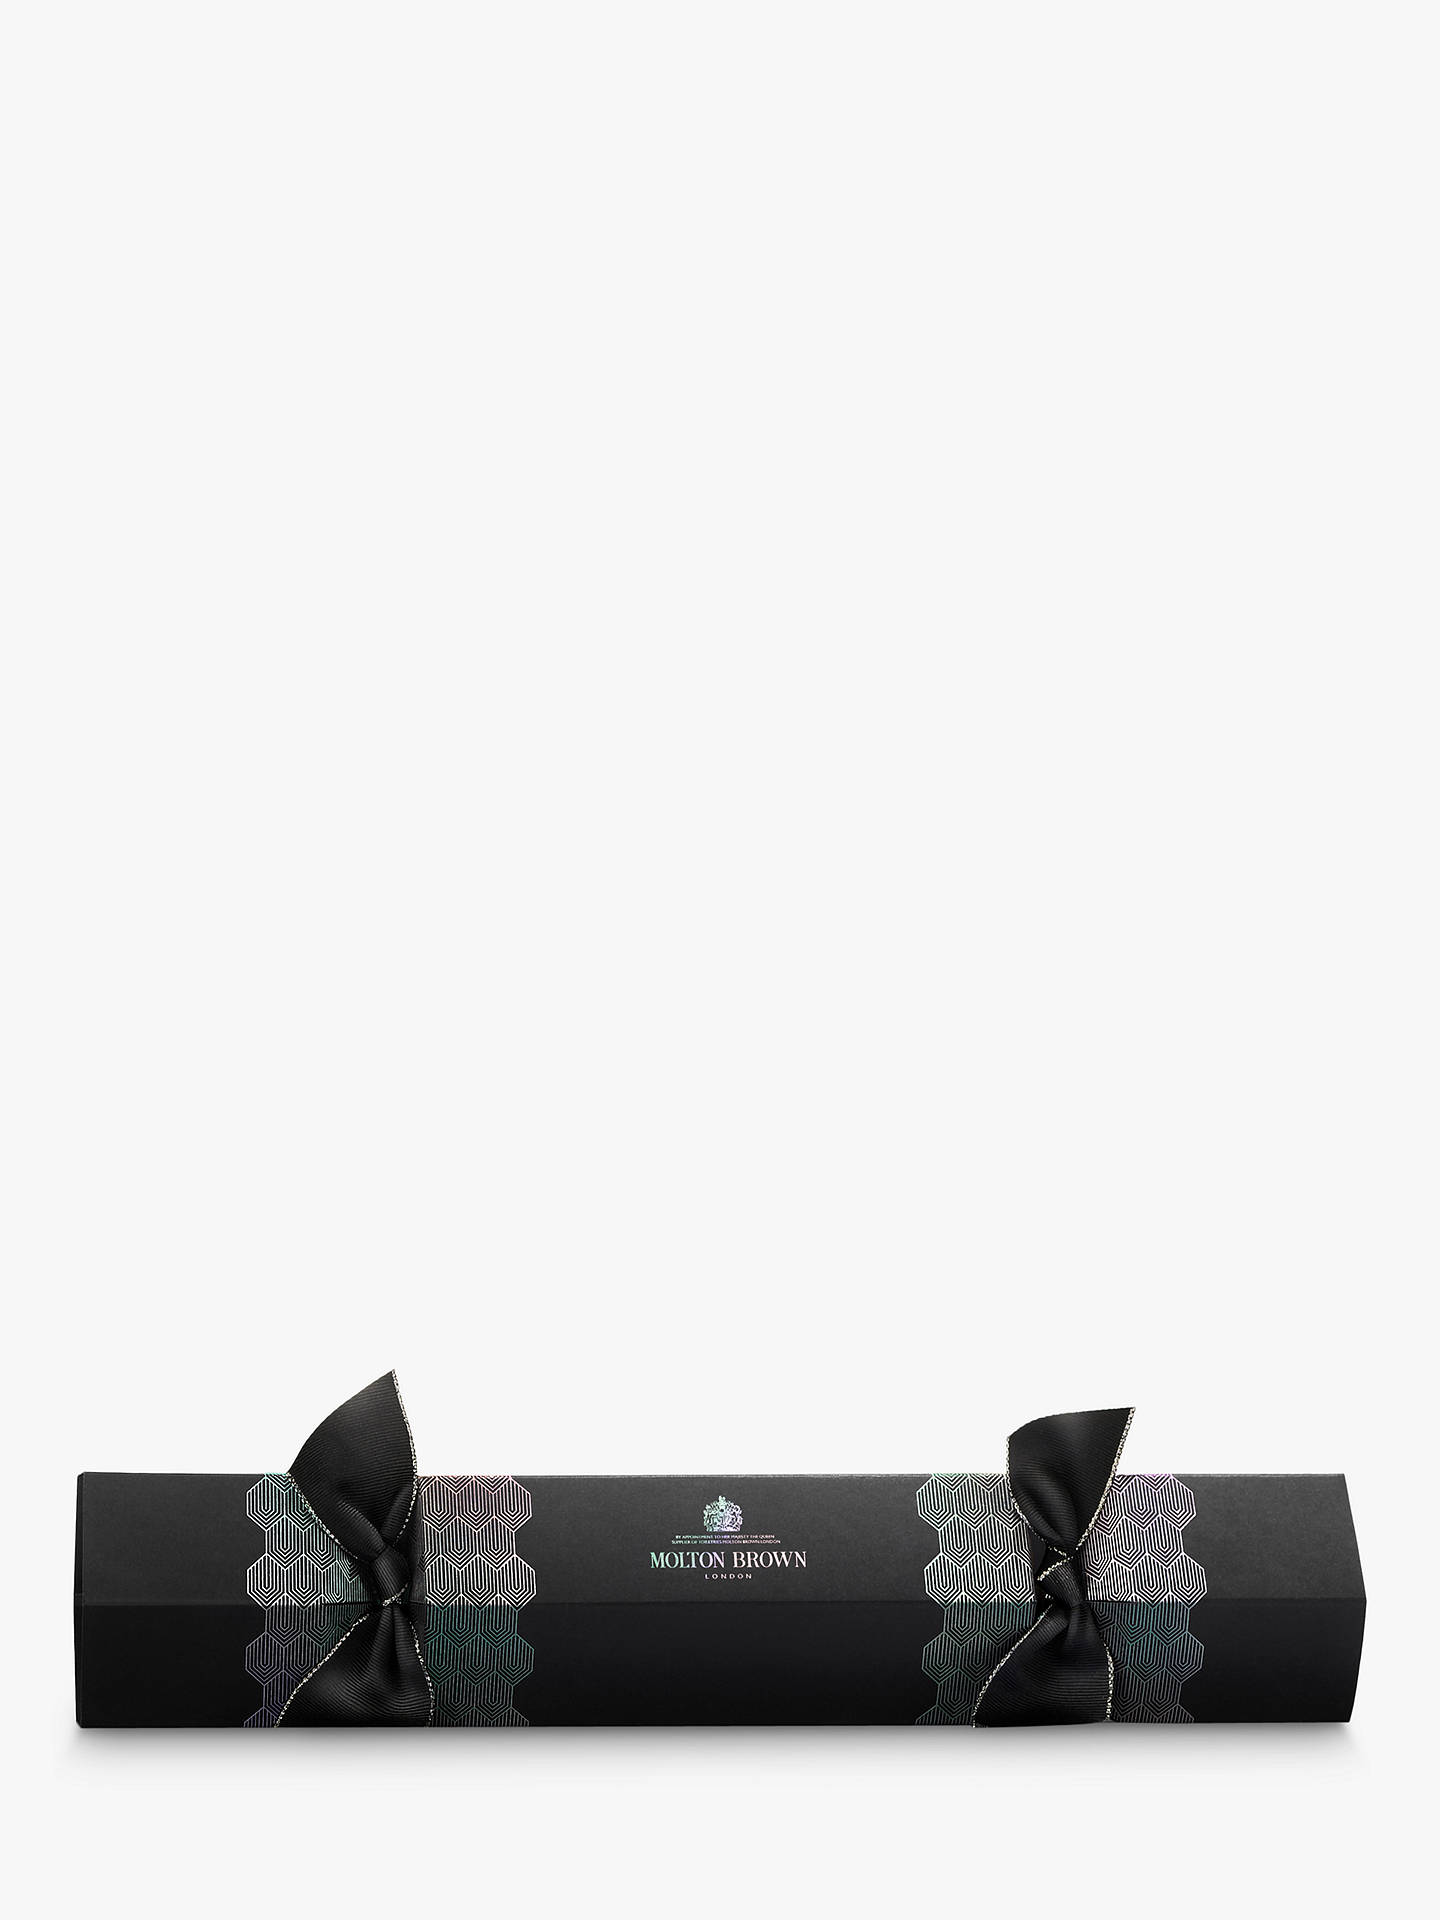 Buy Molton Brown Floral & Citrus Christmas Cracker Bodycare Gift Set Online at johnlewis.com